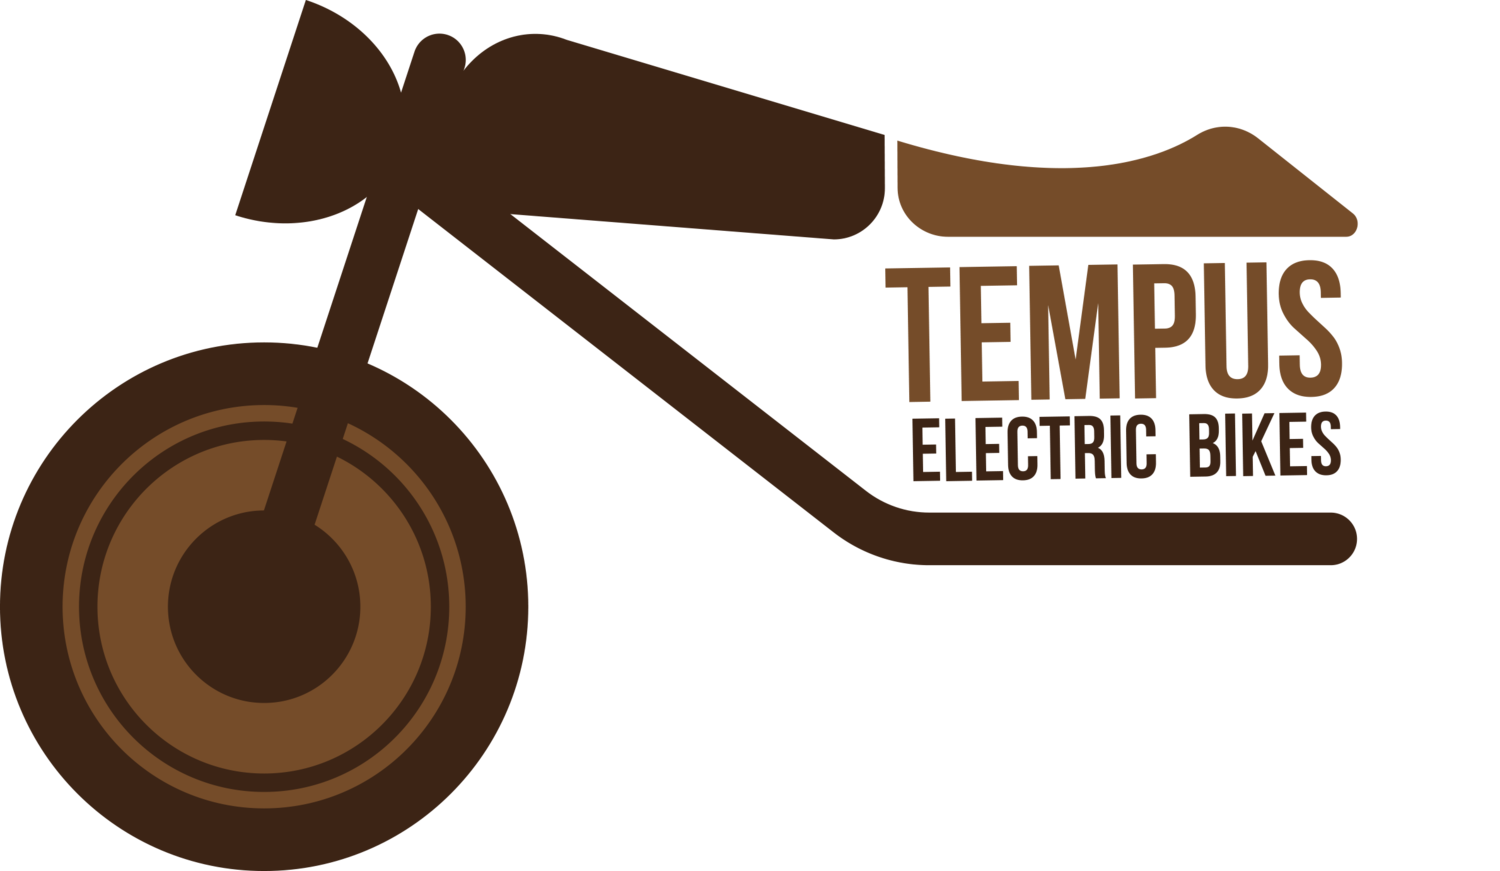 Tempus Electric Bikes